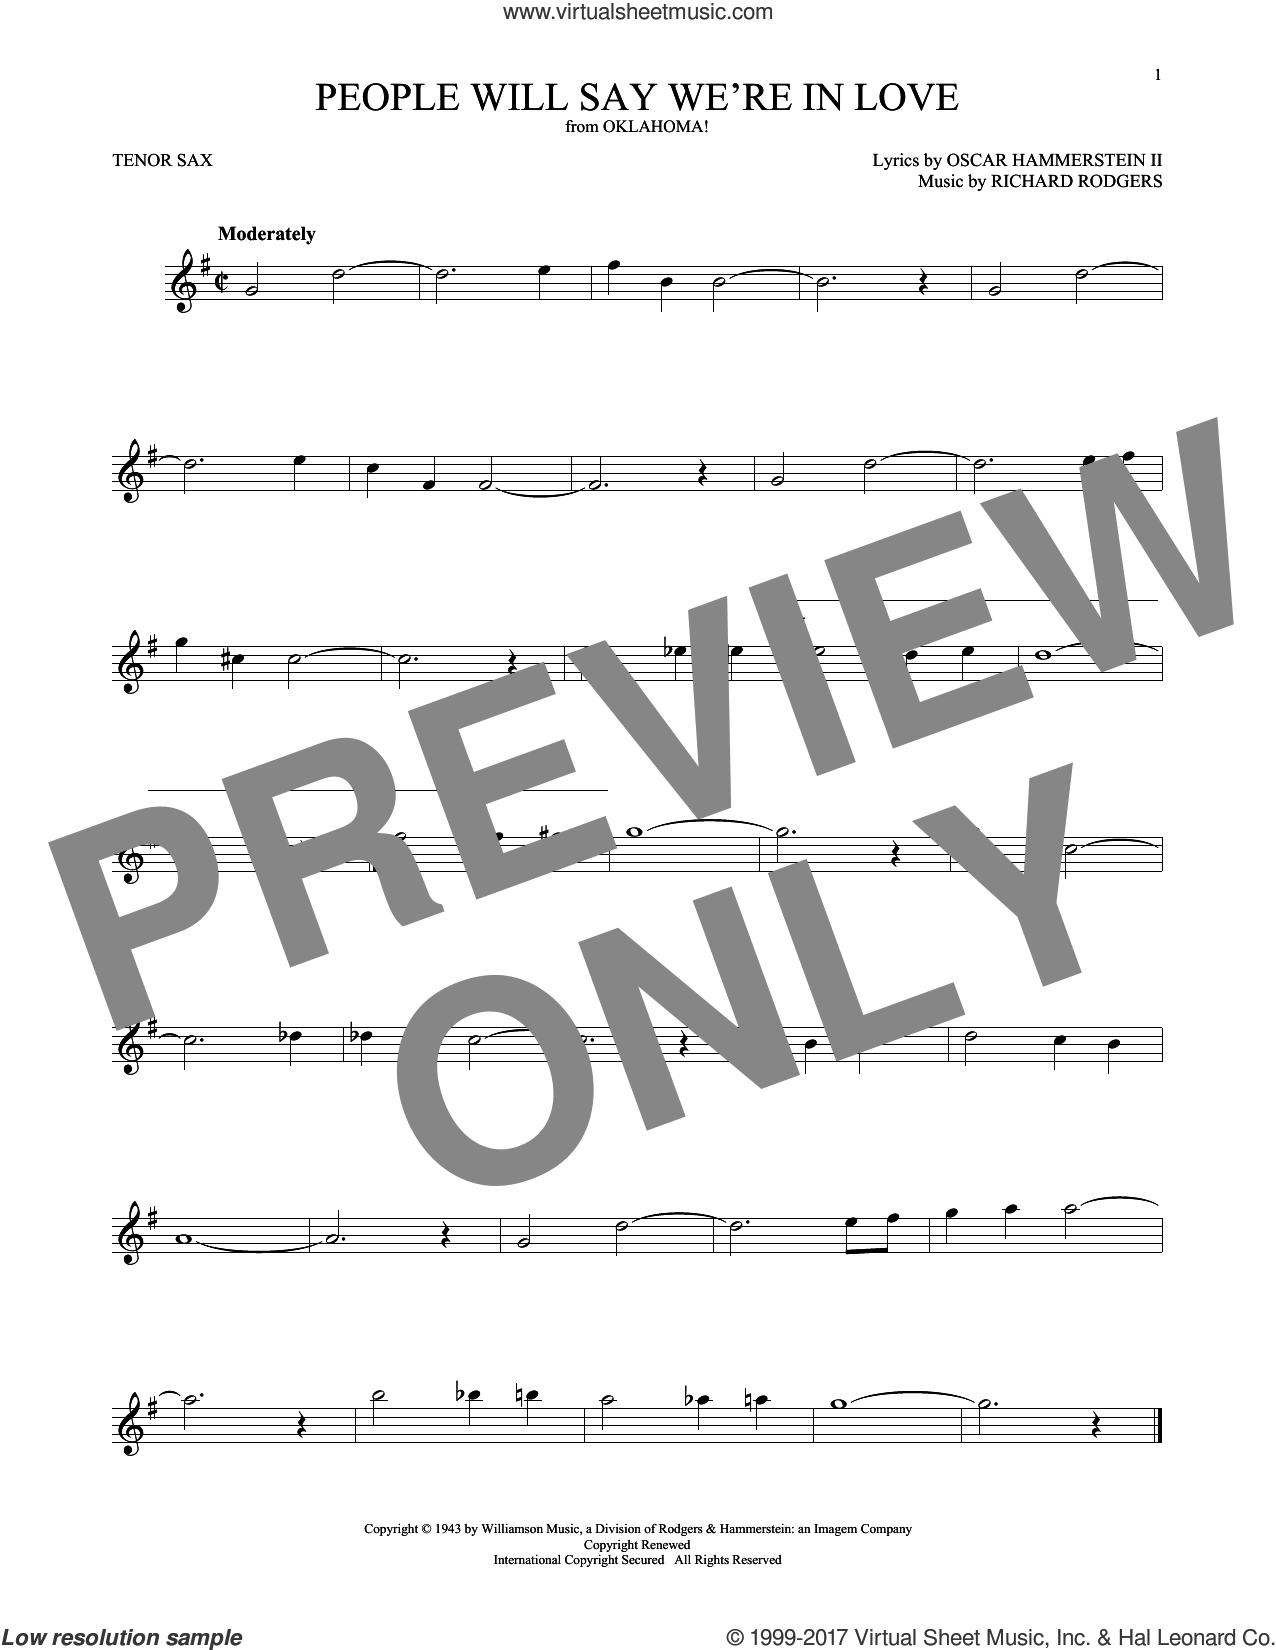 People Will Say We're In Love (from Oklahoma!) sheet music for tenor saxophone solo by Rodgers & Hammerstein, Oscar II Hammerstein and Richard Rodgers, intermediate skill level